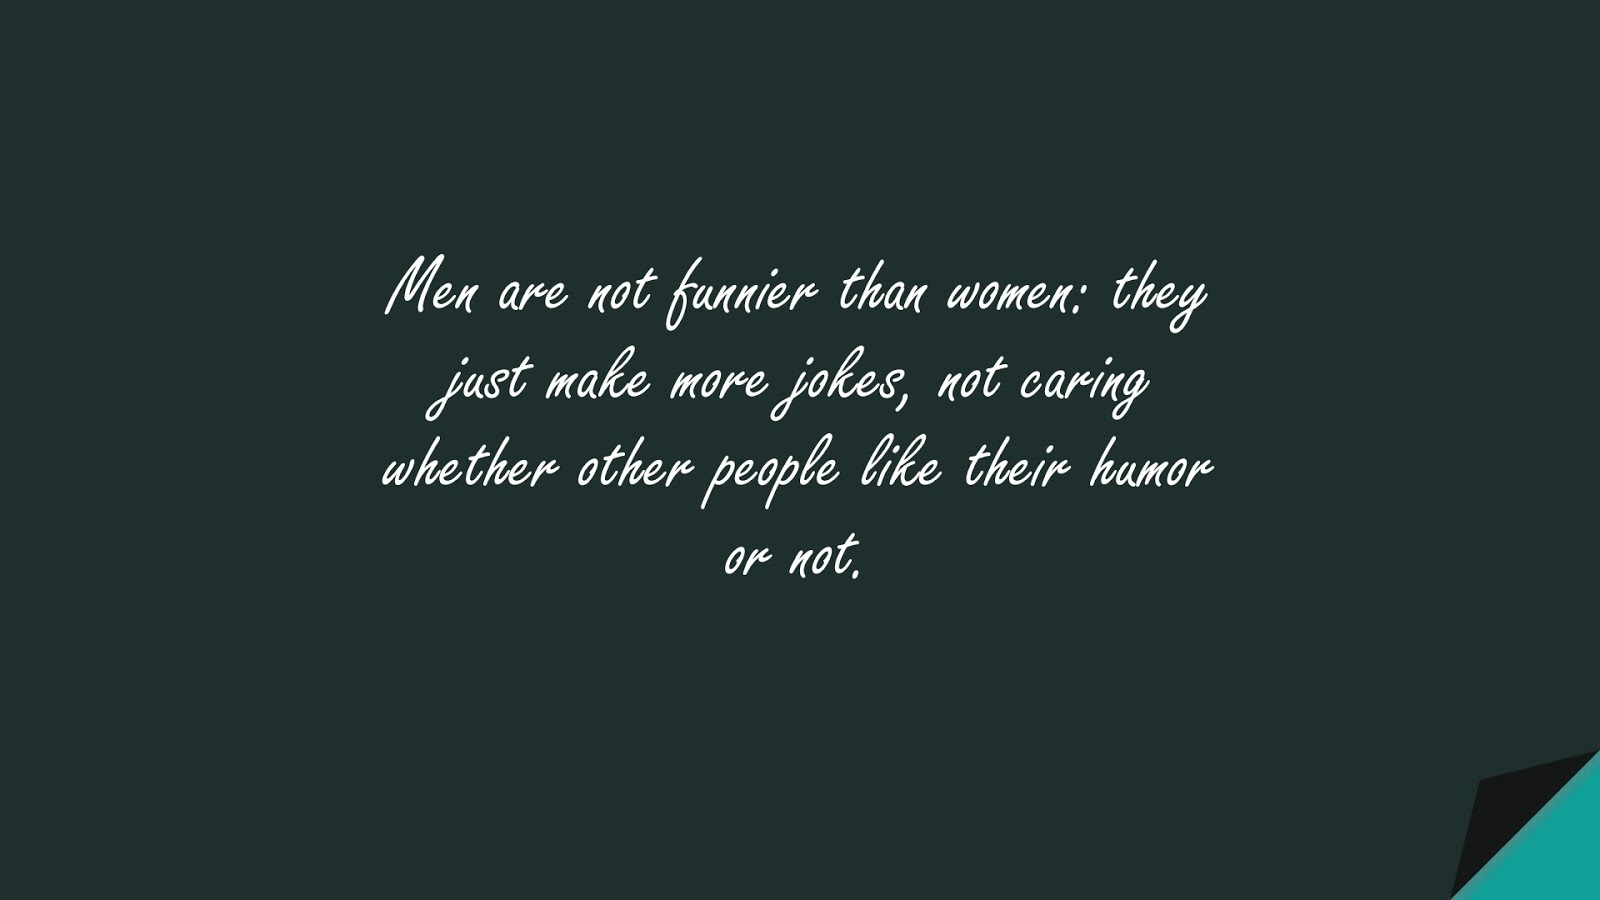 Men are not funnier than women: they just make more jokes, not caring whether other people like their humor or not.FALSE